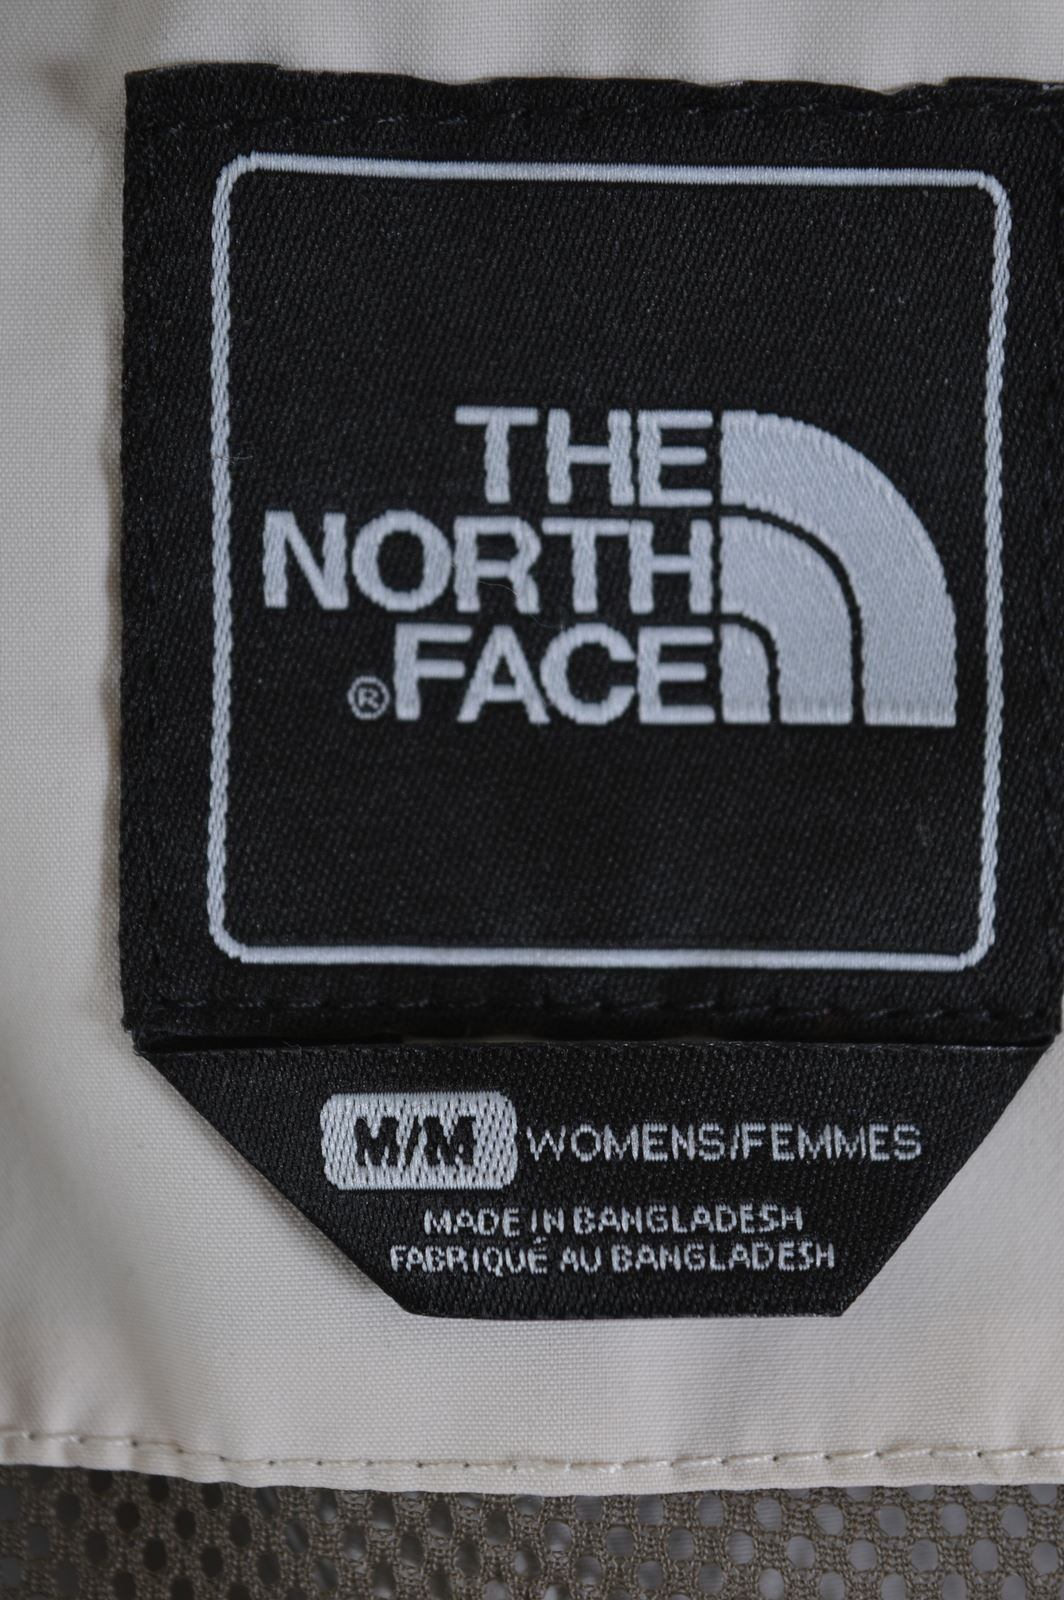 d9e96fe70 Details about THE NORTH FACE Womens Windbreaker Jacket Size 12 Medium Beige  Polyester AX05